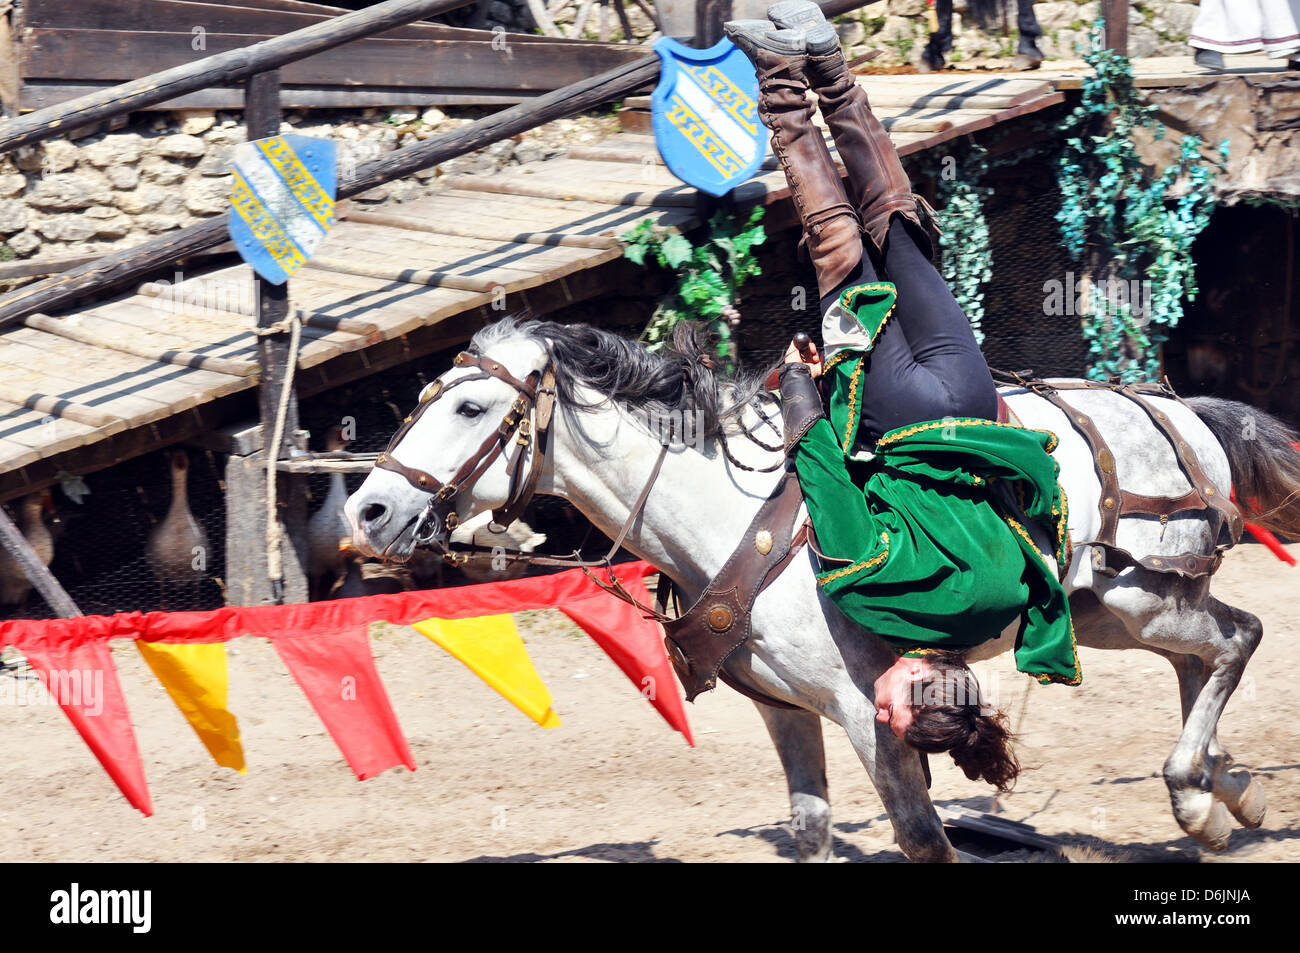 Medieval horse display and show - the 'Legend of the Knights' at Provins town, south of Paris, France. - Stock Image